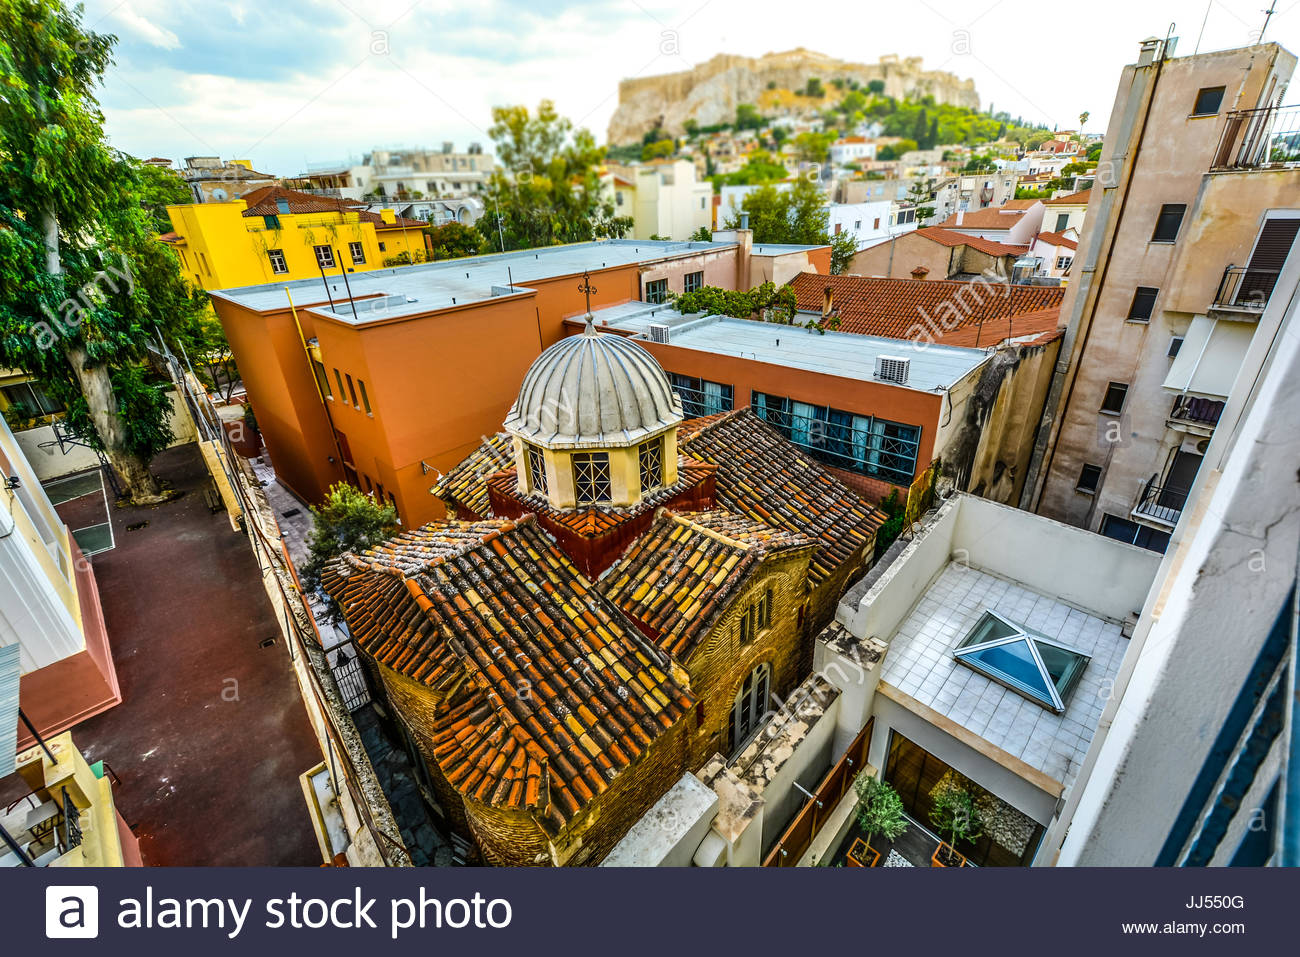 Window view of an ancient Church in Athens Greece squeezed in among the town buildings with the Acropolis and Parthenon - Stock Image